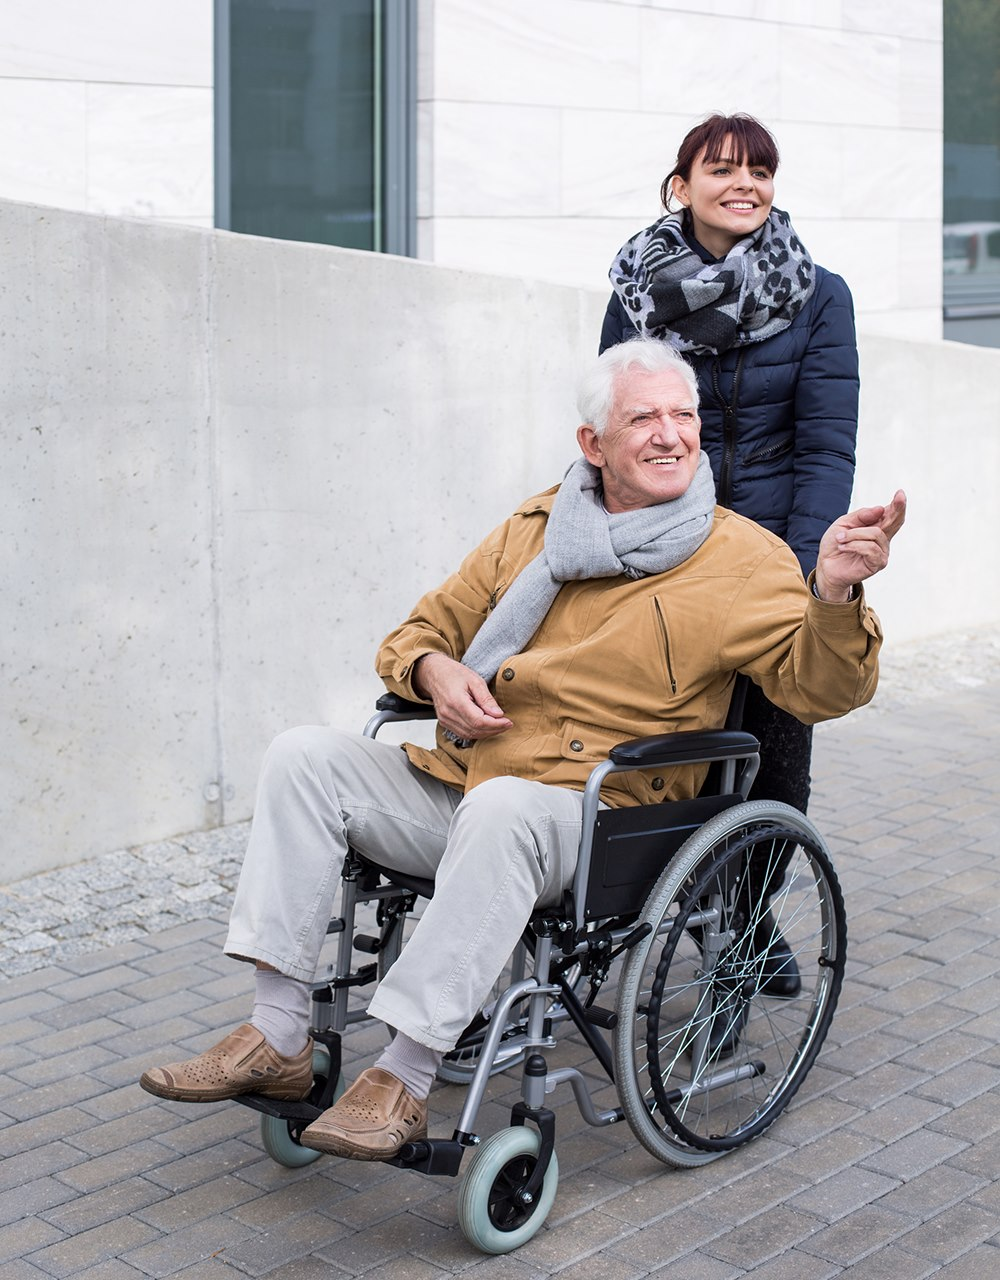 Image of Man in wheelchair and woman helping him